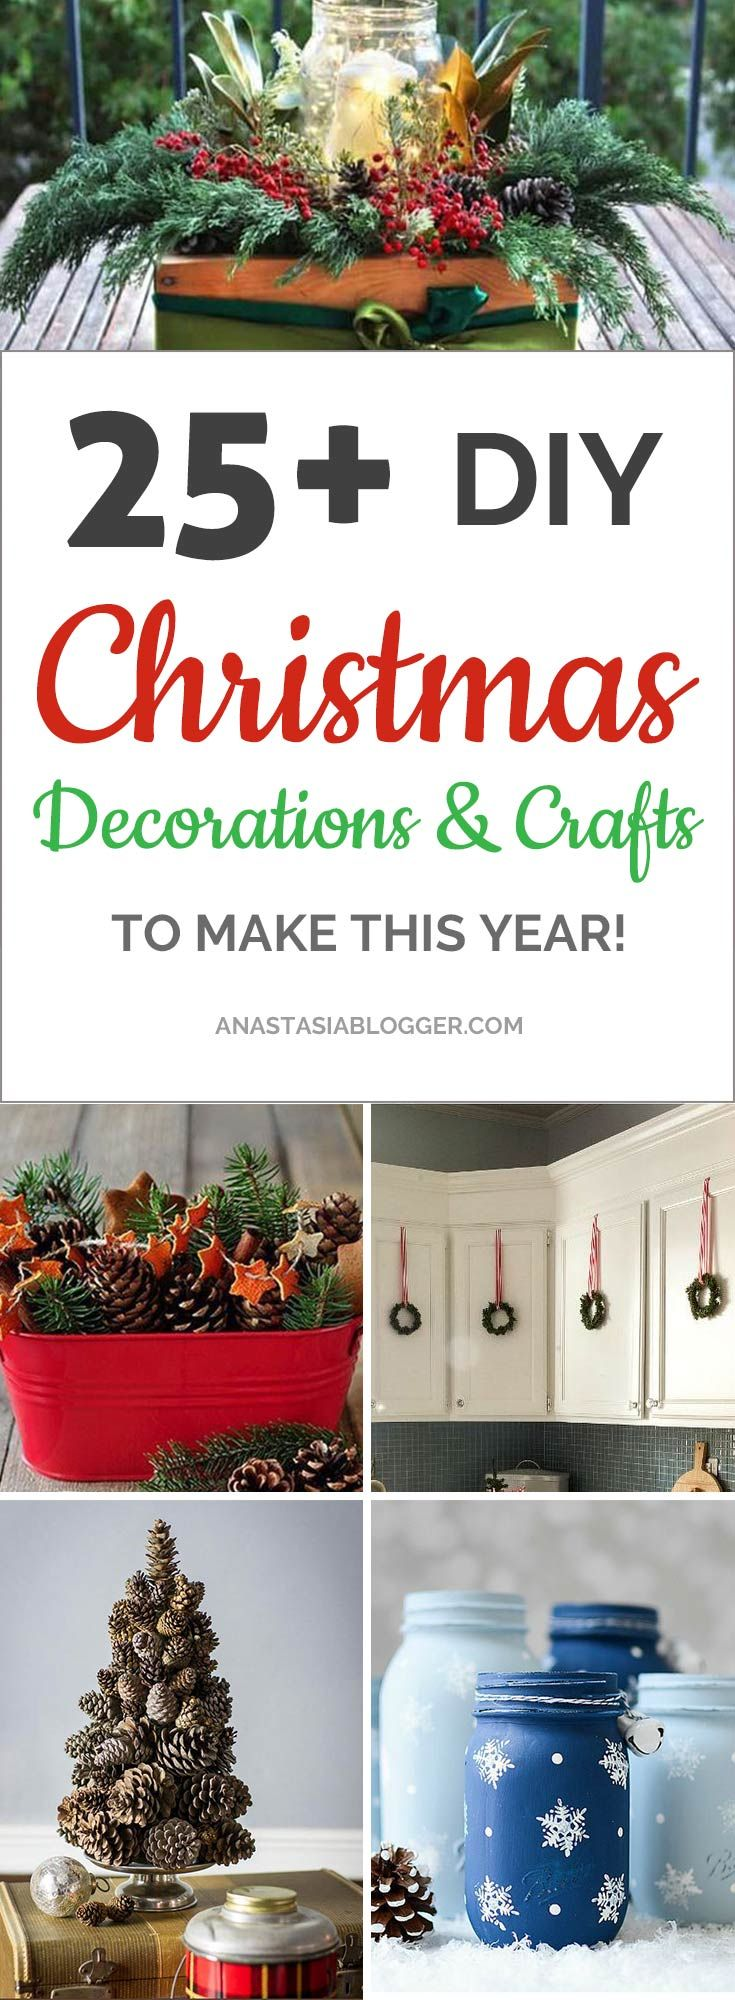 Cheap and easy Christmas decor ideas and Crafts. Find here Xmas decorations DIY for outdoor, living room and other spaces in your home or apartment.  Here are the Christmas decor ideas 2017 on Pinterest! #xmas  #christmas #christmasdecor